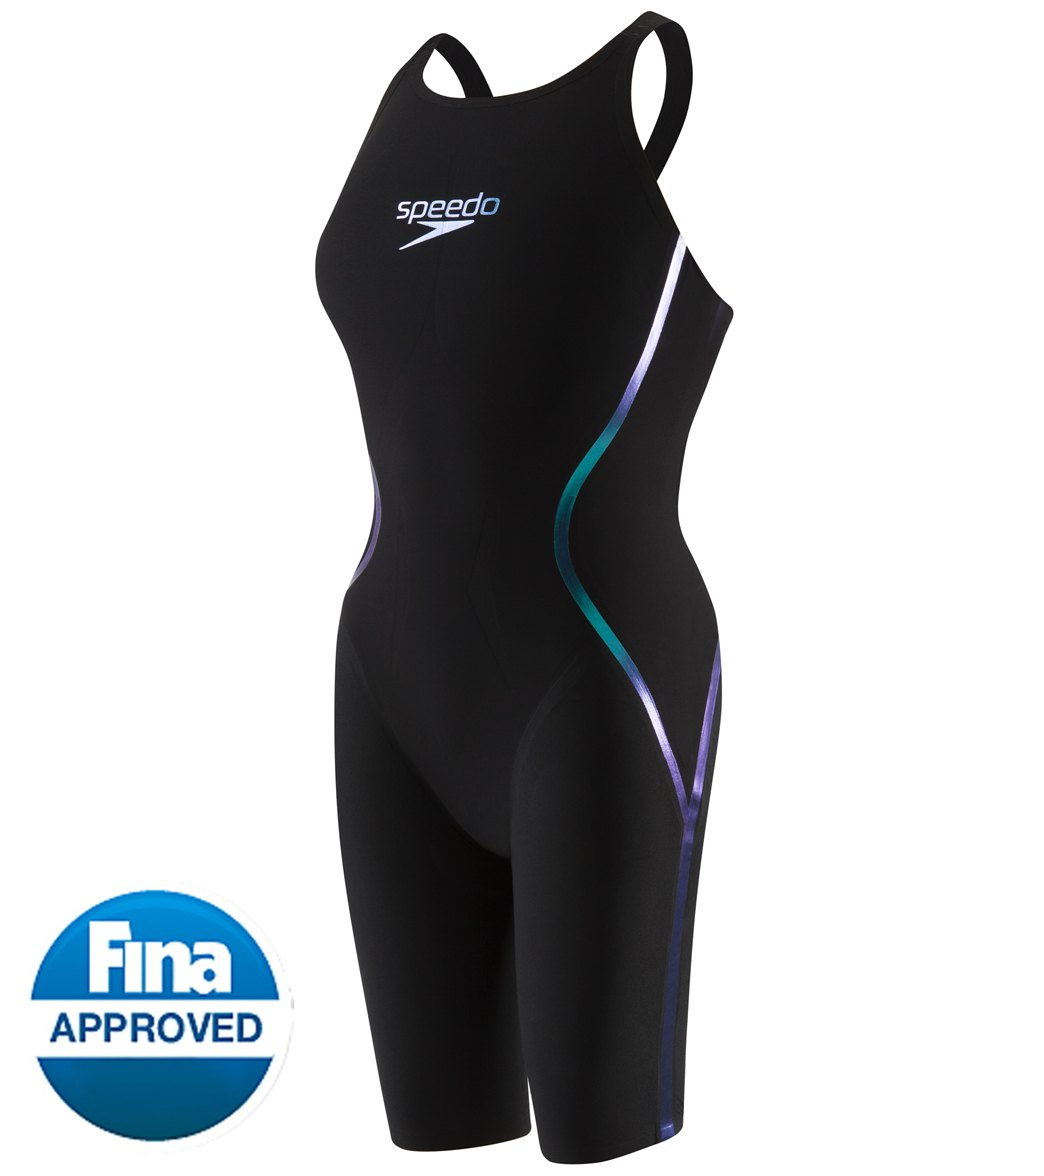 58264dc40f2 Speedo Women's LZR Racer X Open Back Kneeskin Tech Suit Swimsuit at  SwimOutlet.com - Free Shipping